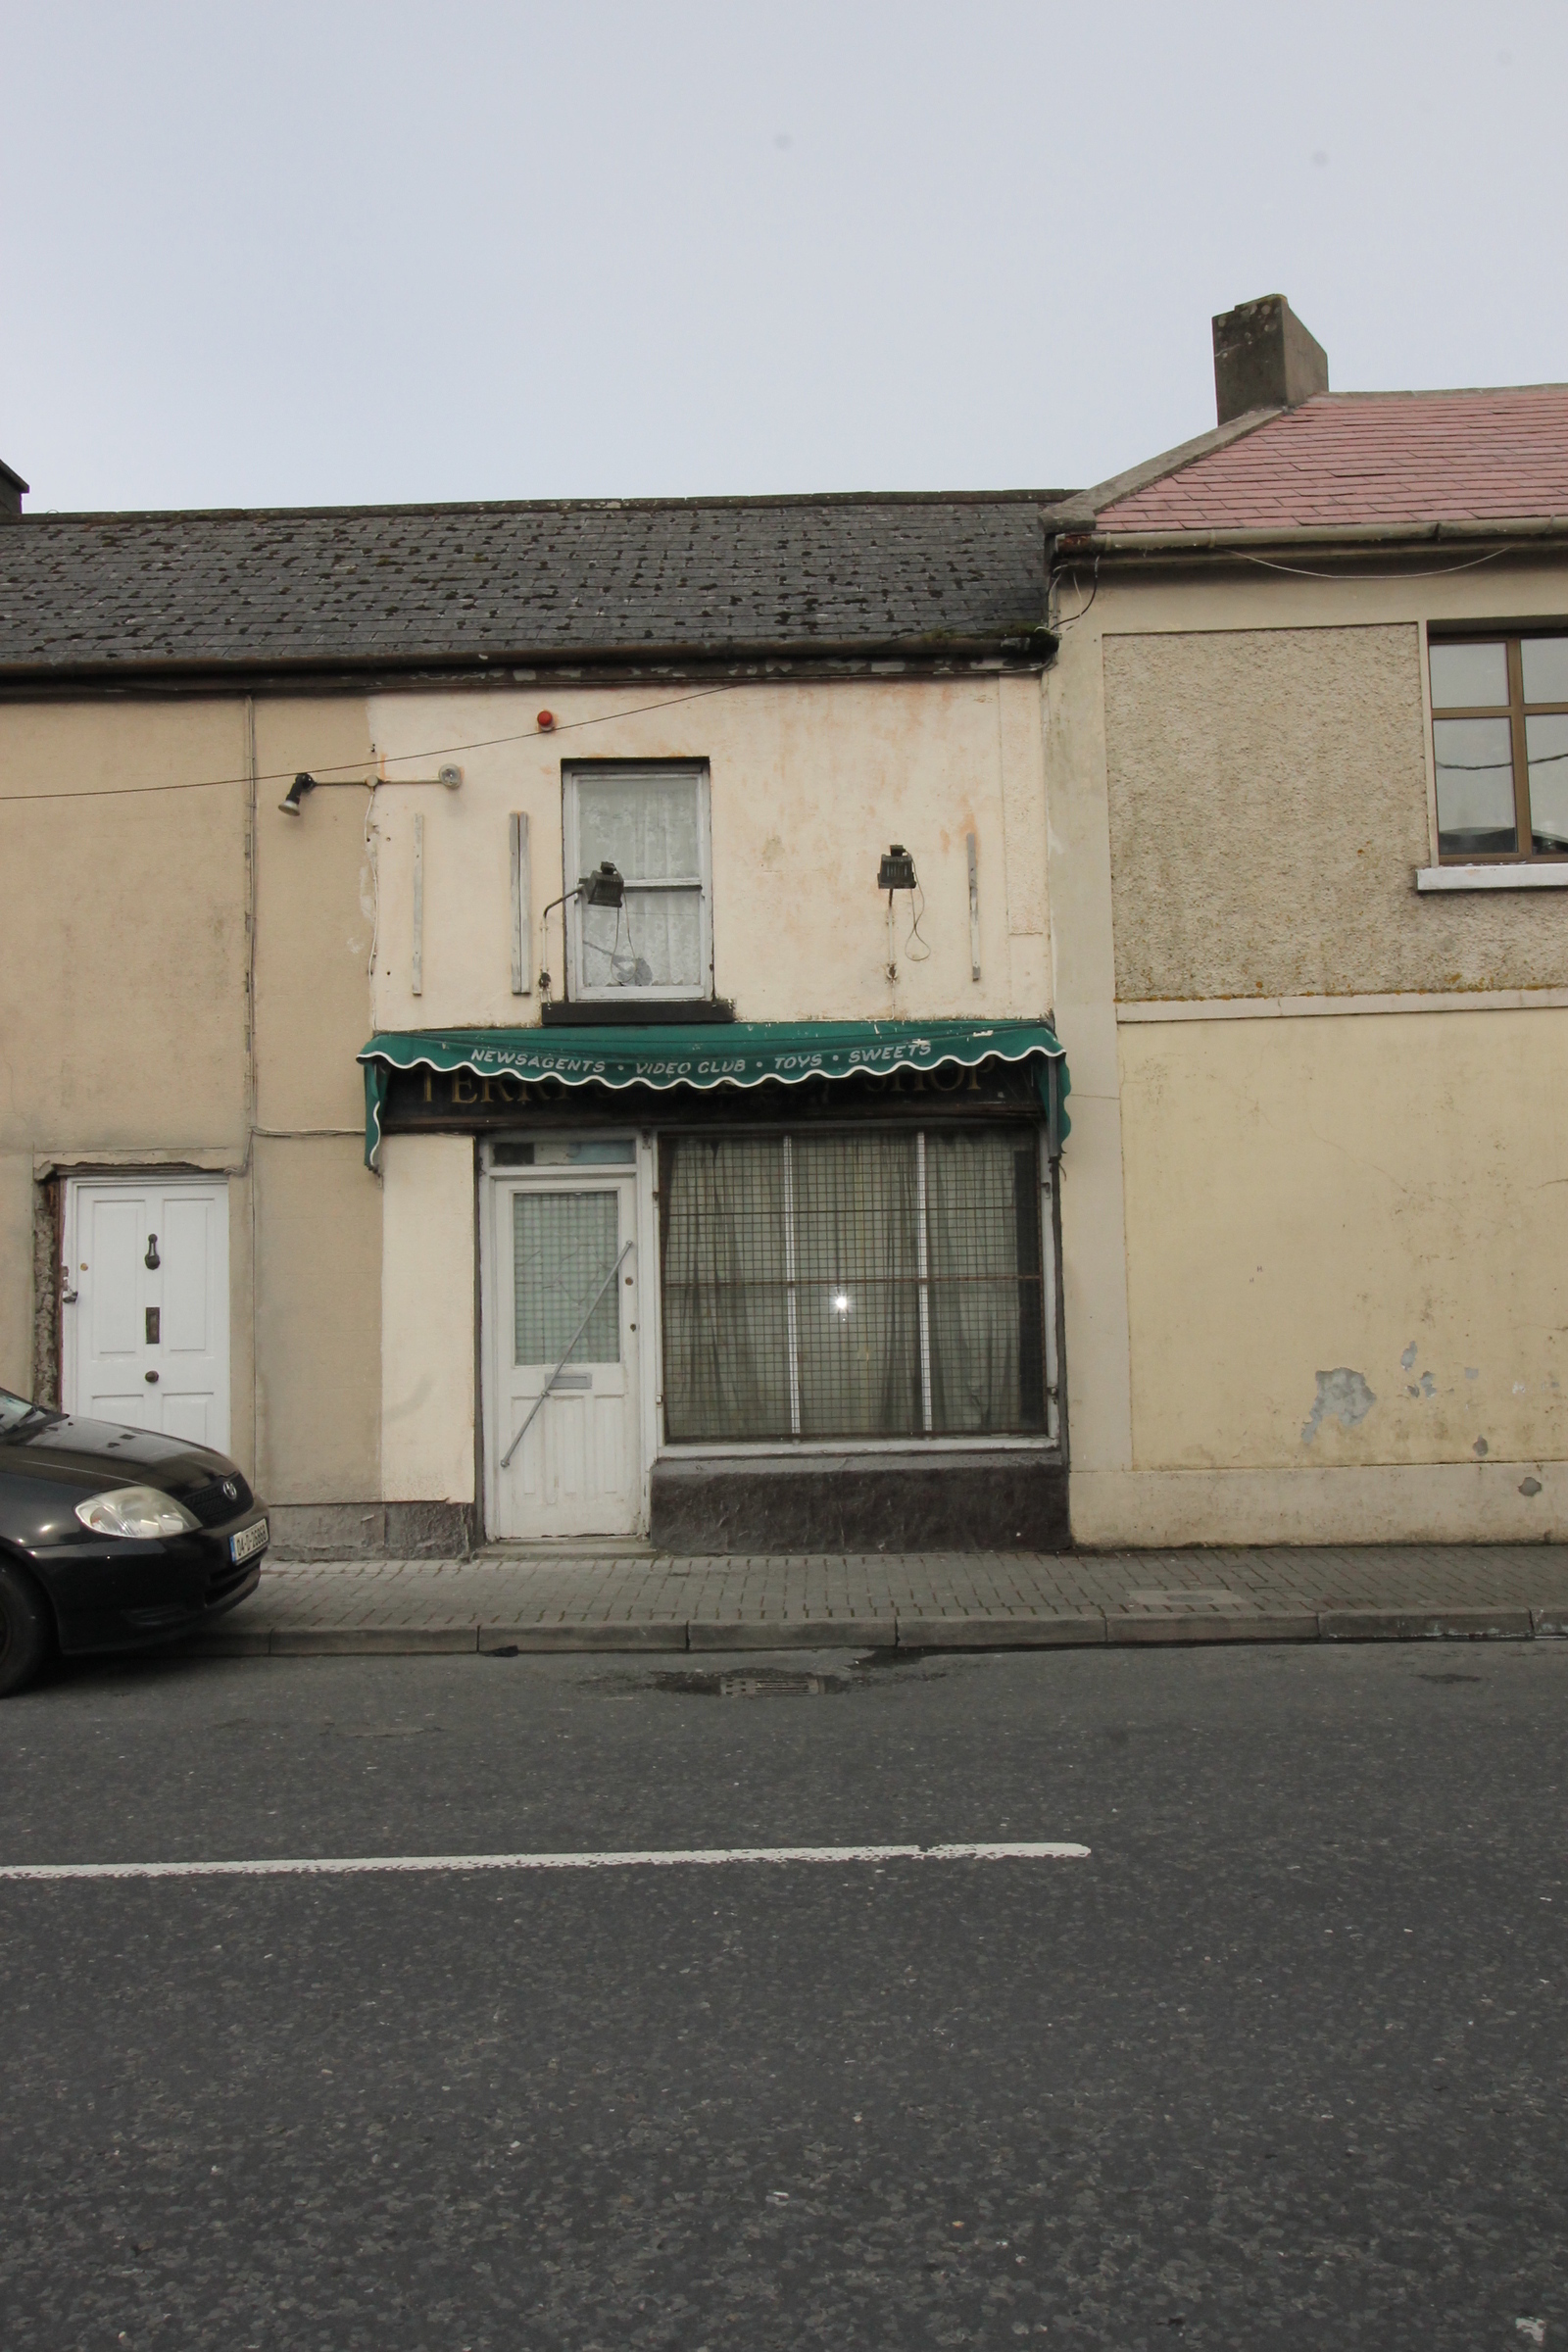 16 Parnell Street, Thurles, Co. Tipperary